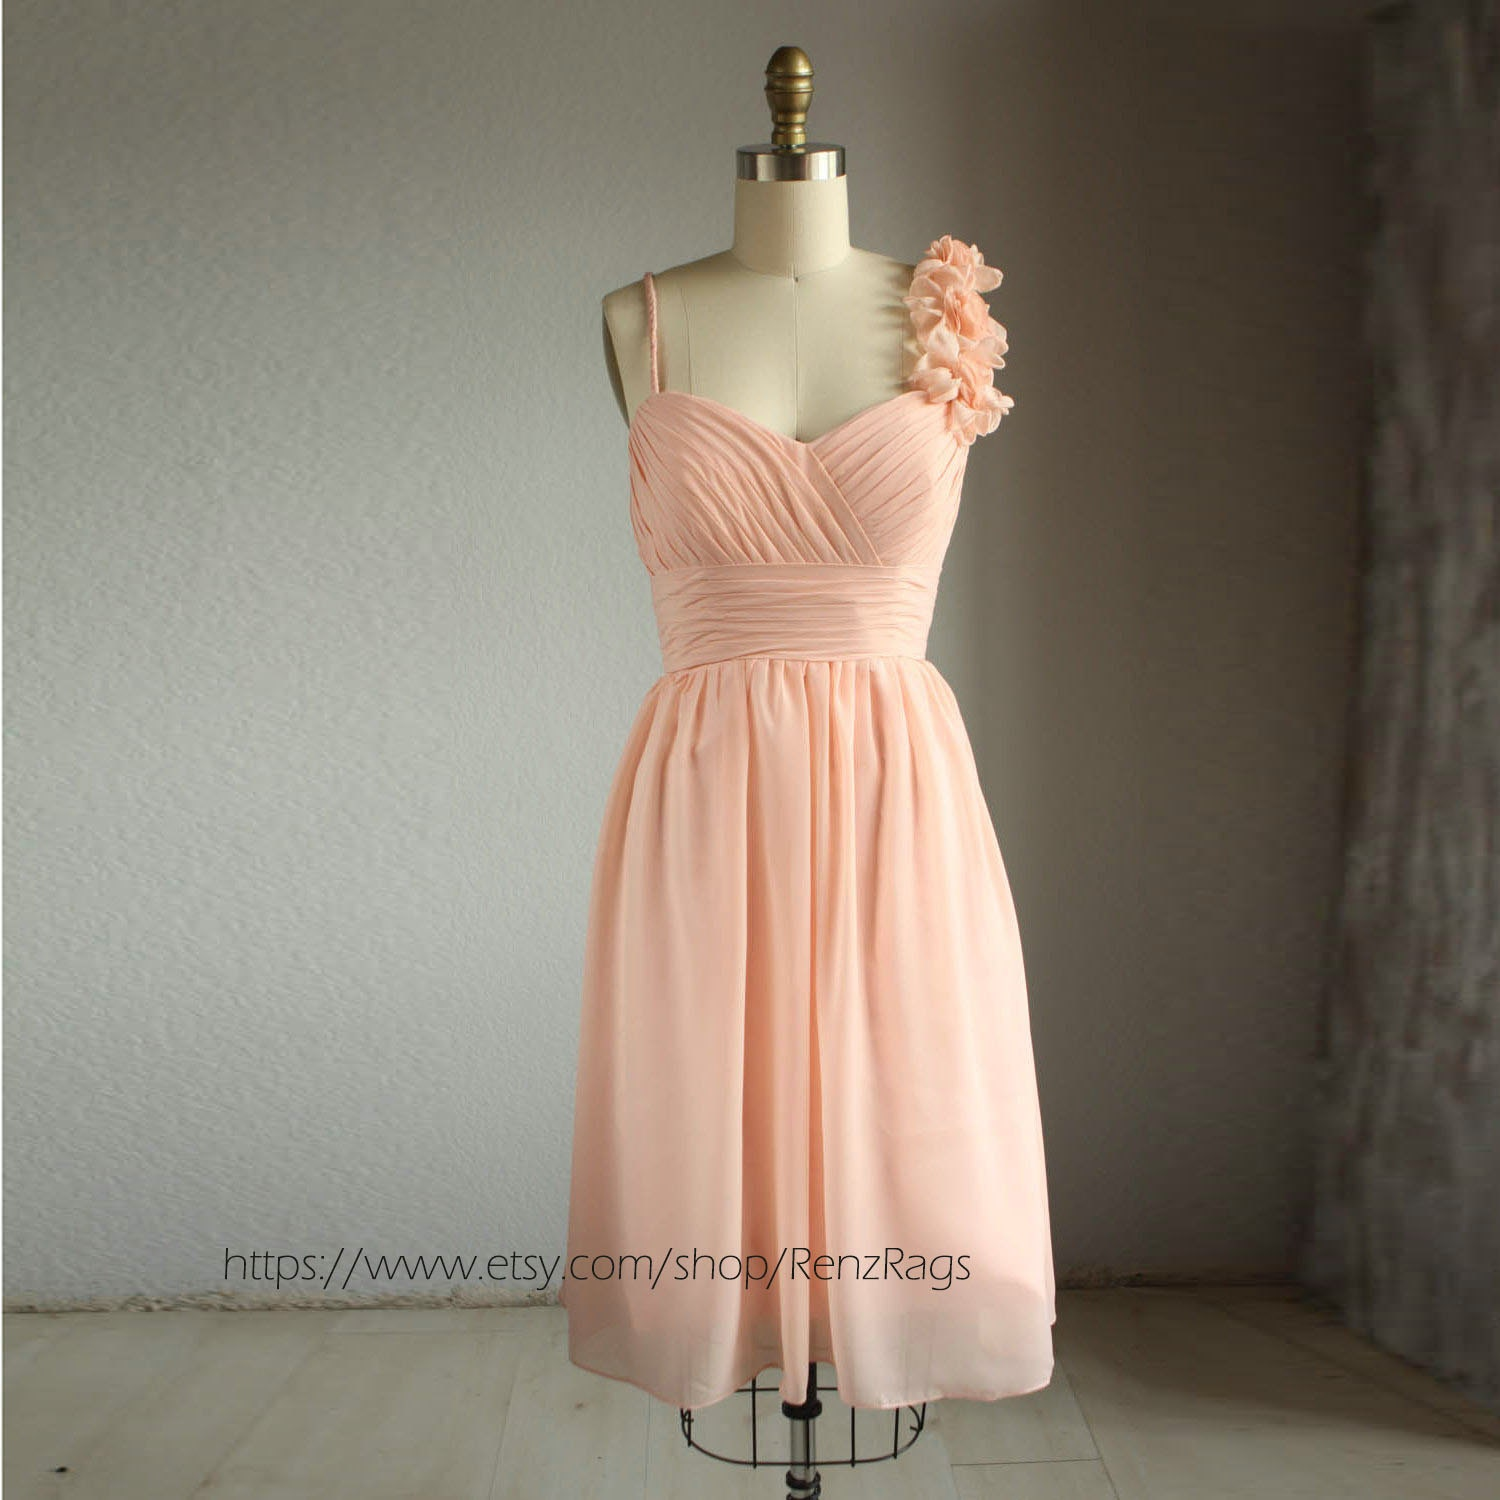 Peach bridesmaid dress wedding dress handmade prom dress for Peach dresses for wedding